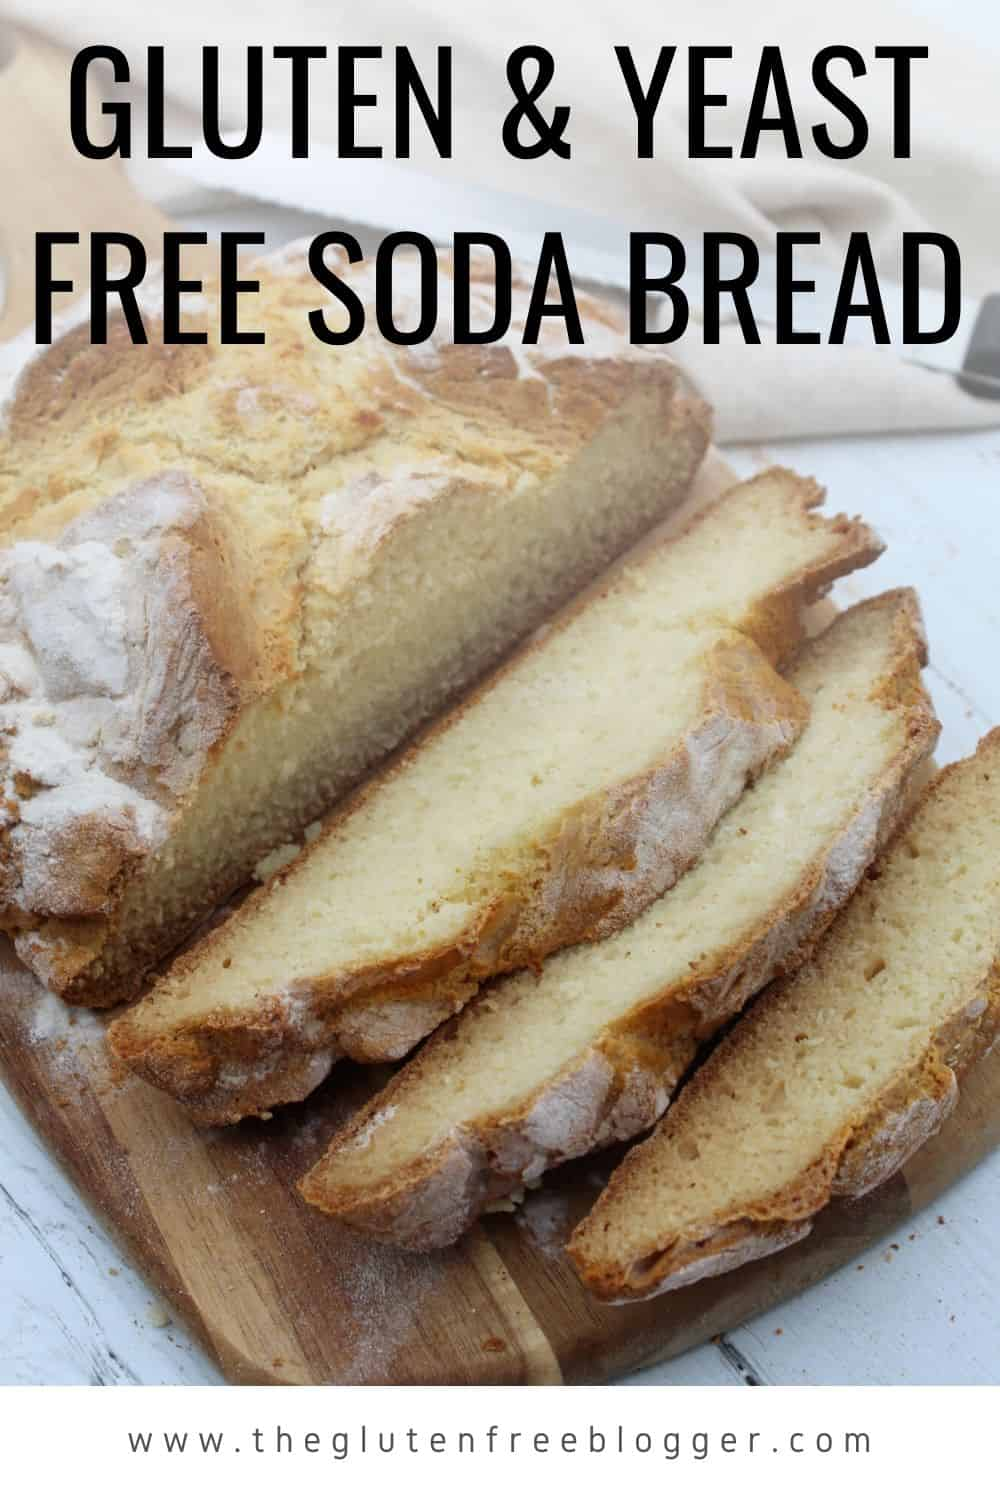 gluten free soda bread yeast free bread recipe easy baking at home (1)